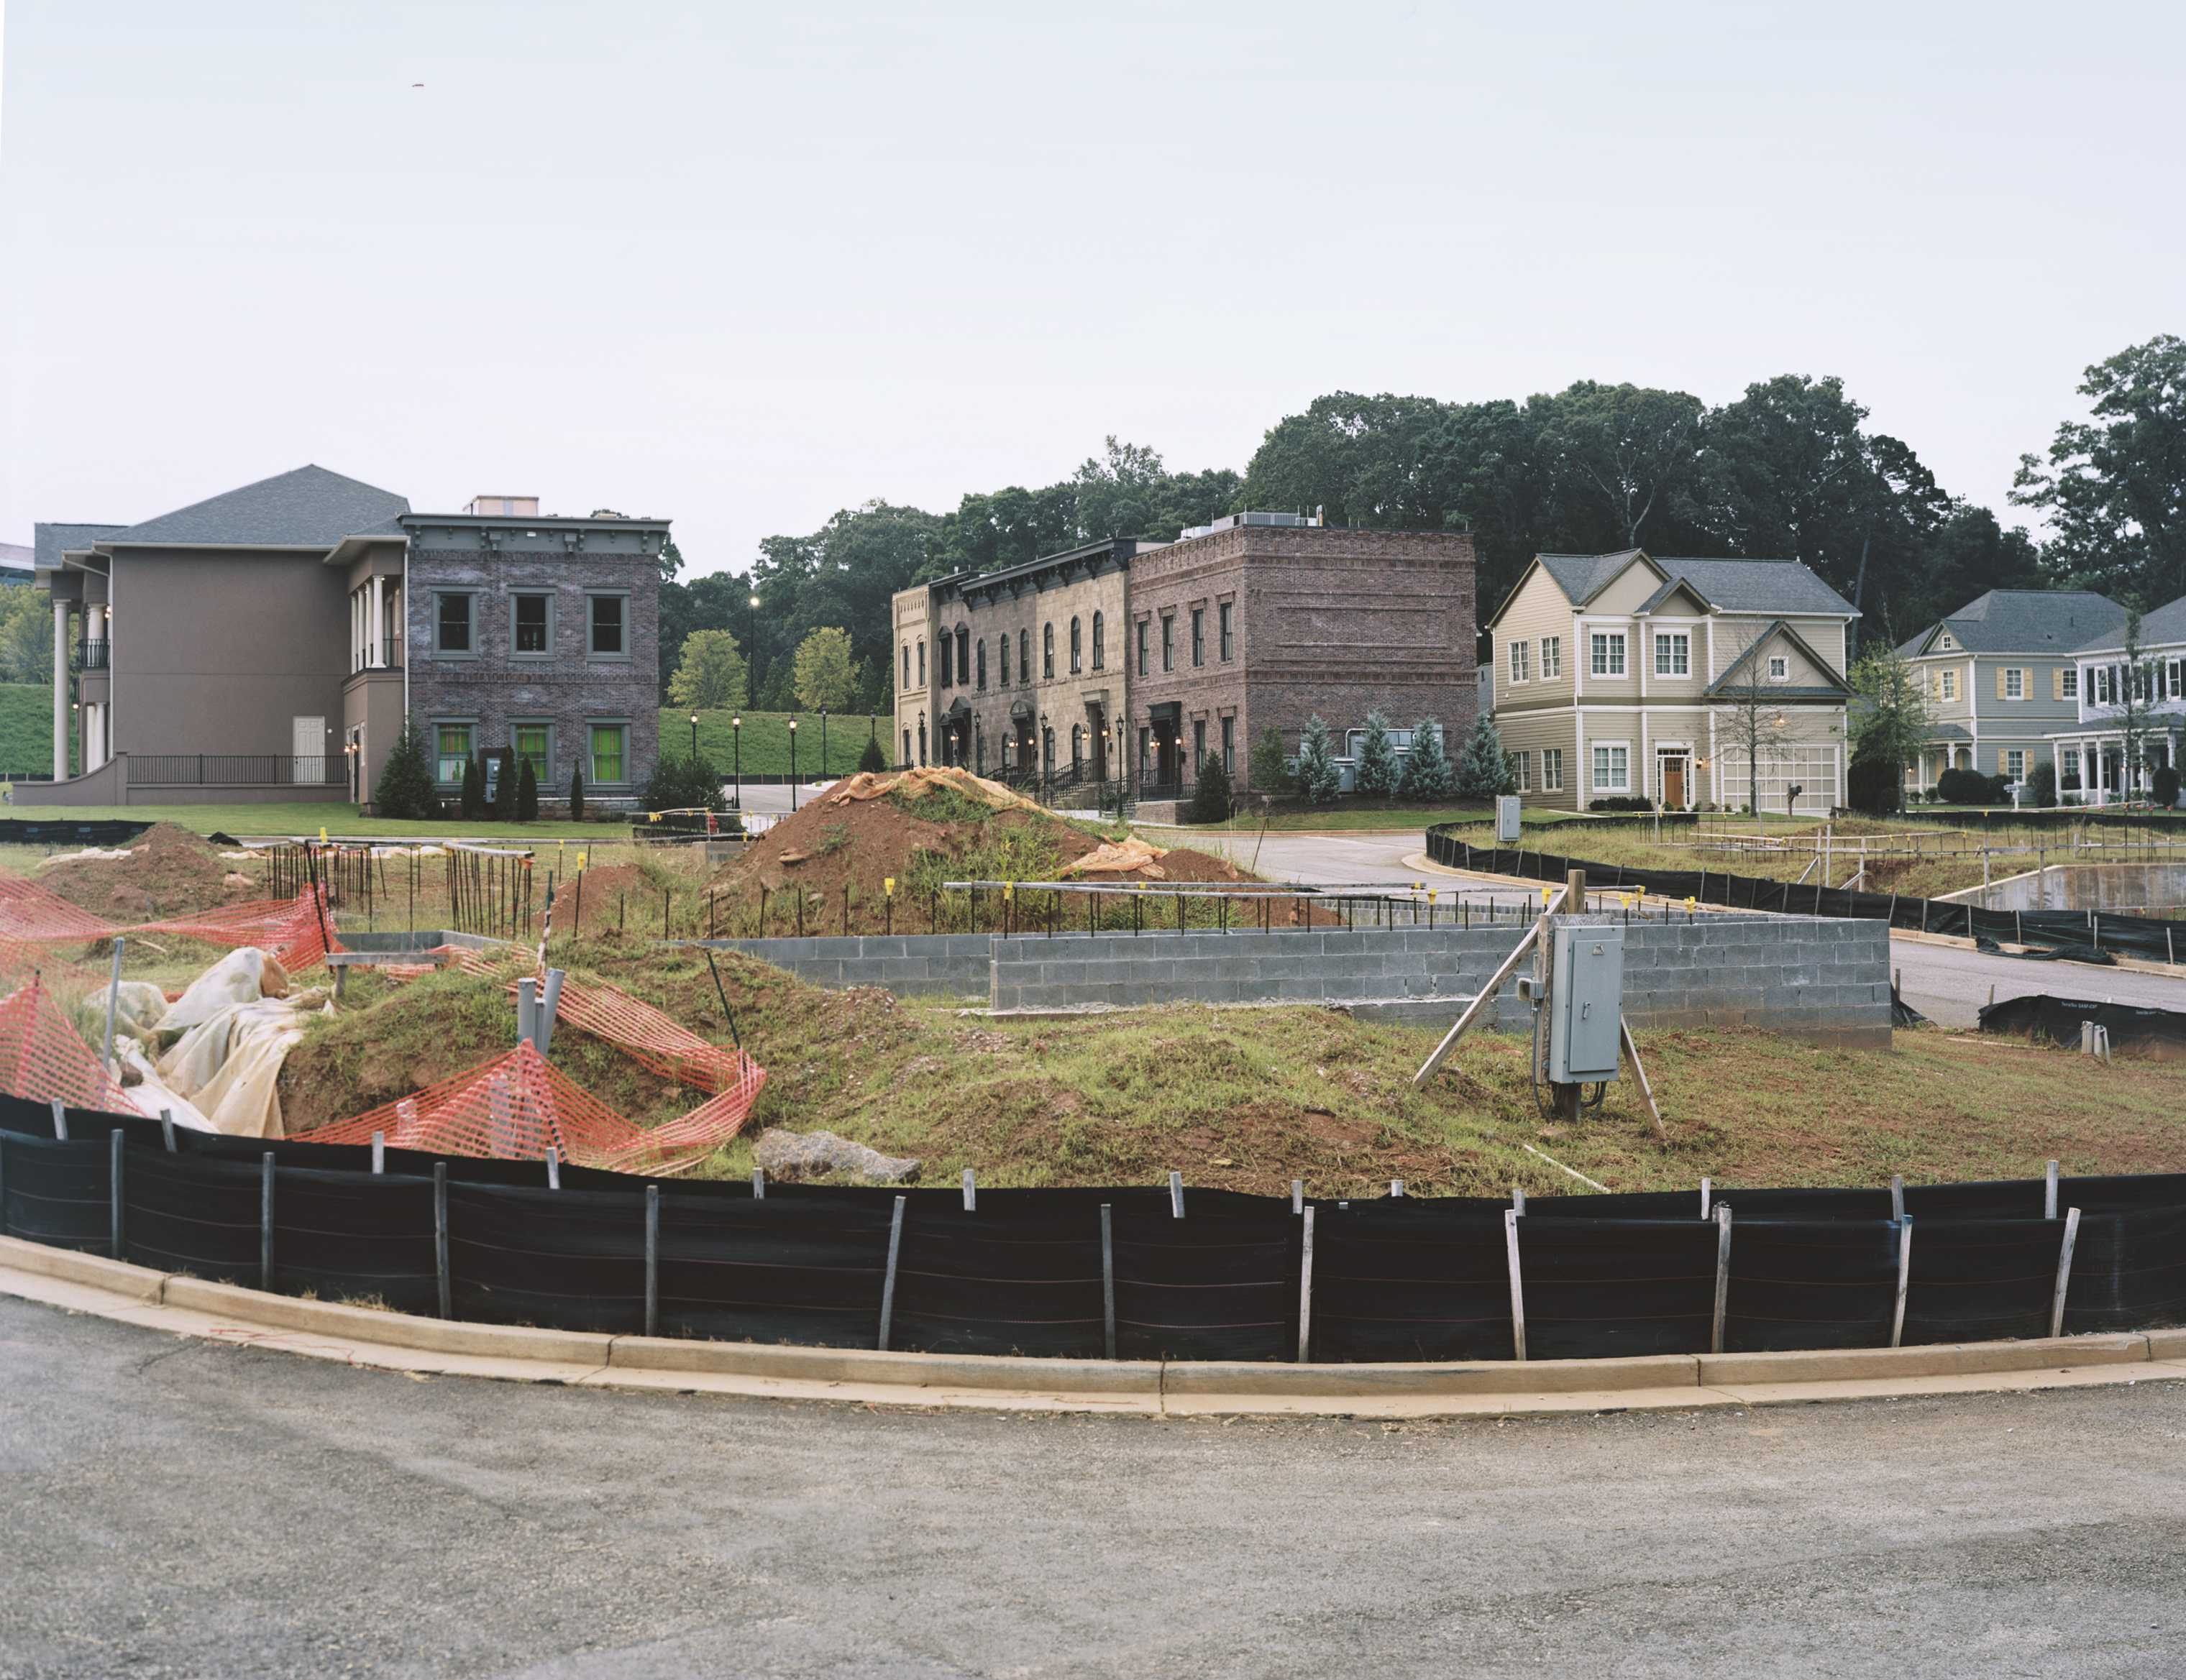 A view of  Maxineville,  named in memory of Tyler Perry's mother Maxine is part of an extensive backlot at Tyler Perry Studios, parts of which are still under construction. The studio will be fully complete in 2019. Situated on 330 acres of historic property on the decommissioned, Fort McPherson Army base.